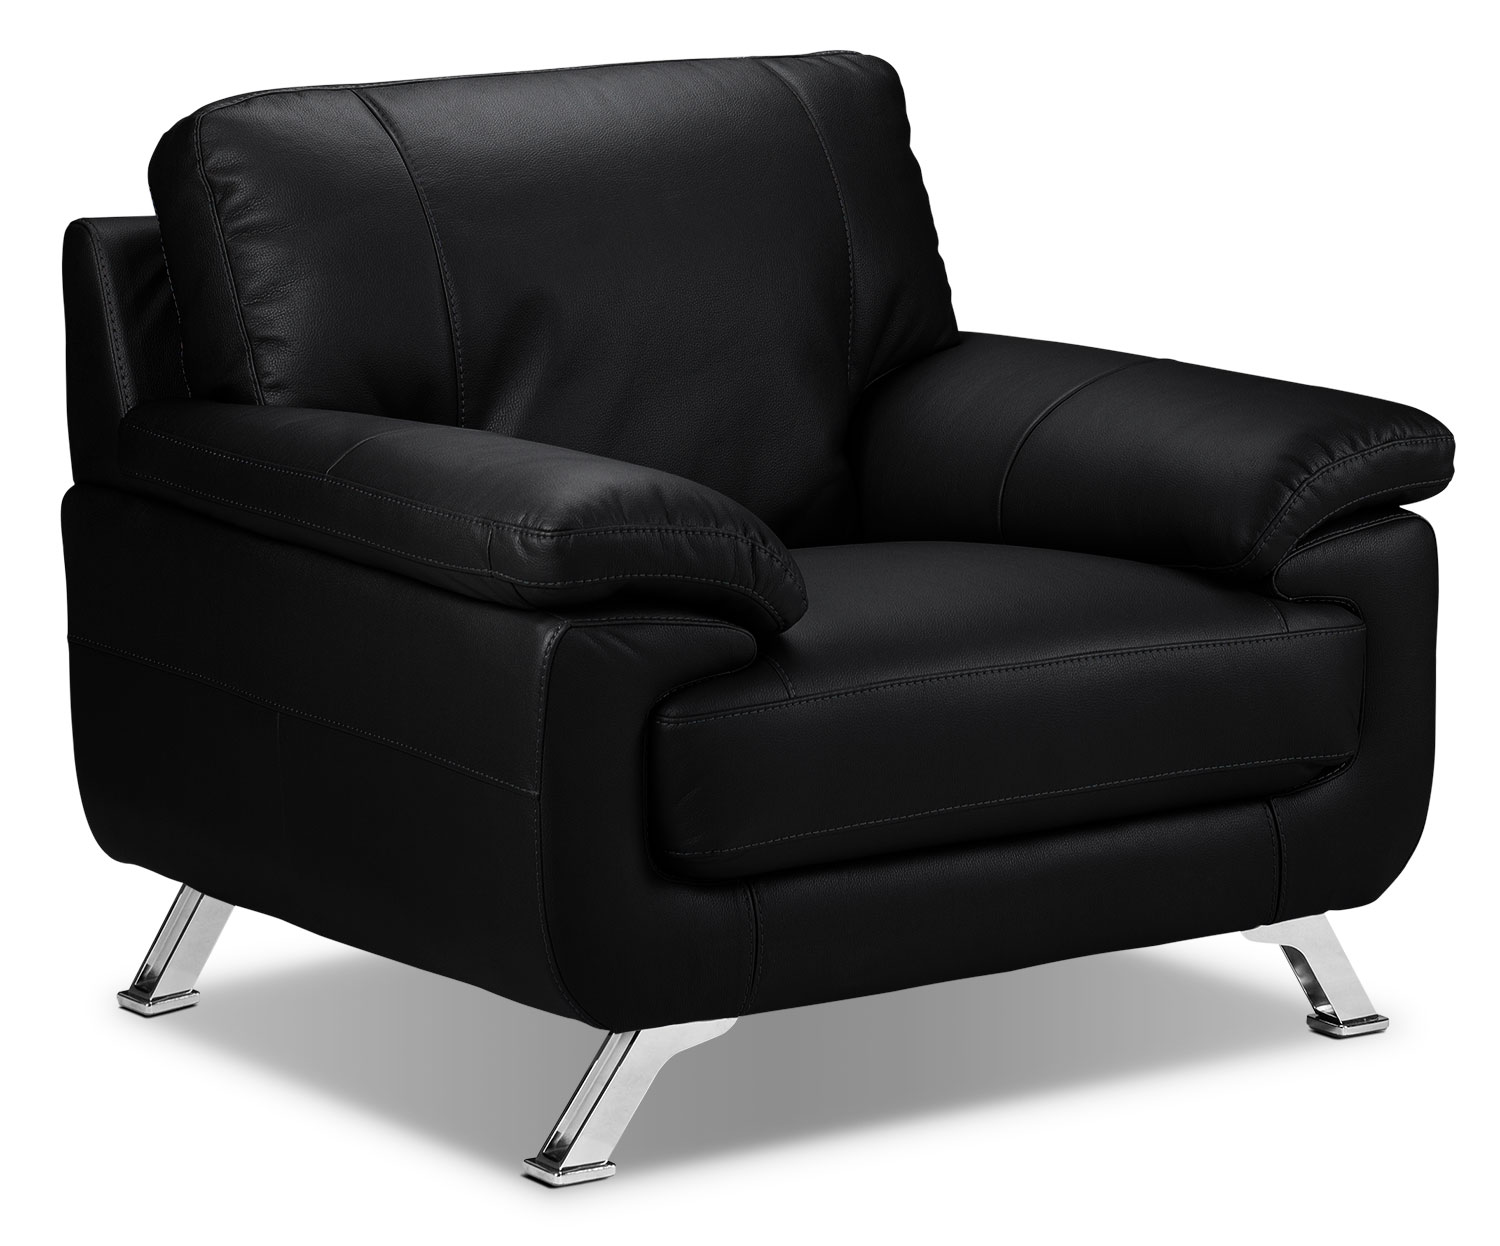 Infinity Chair - Black